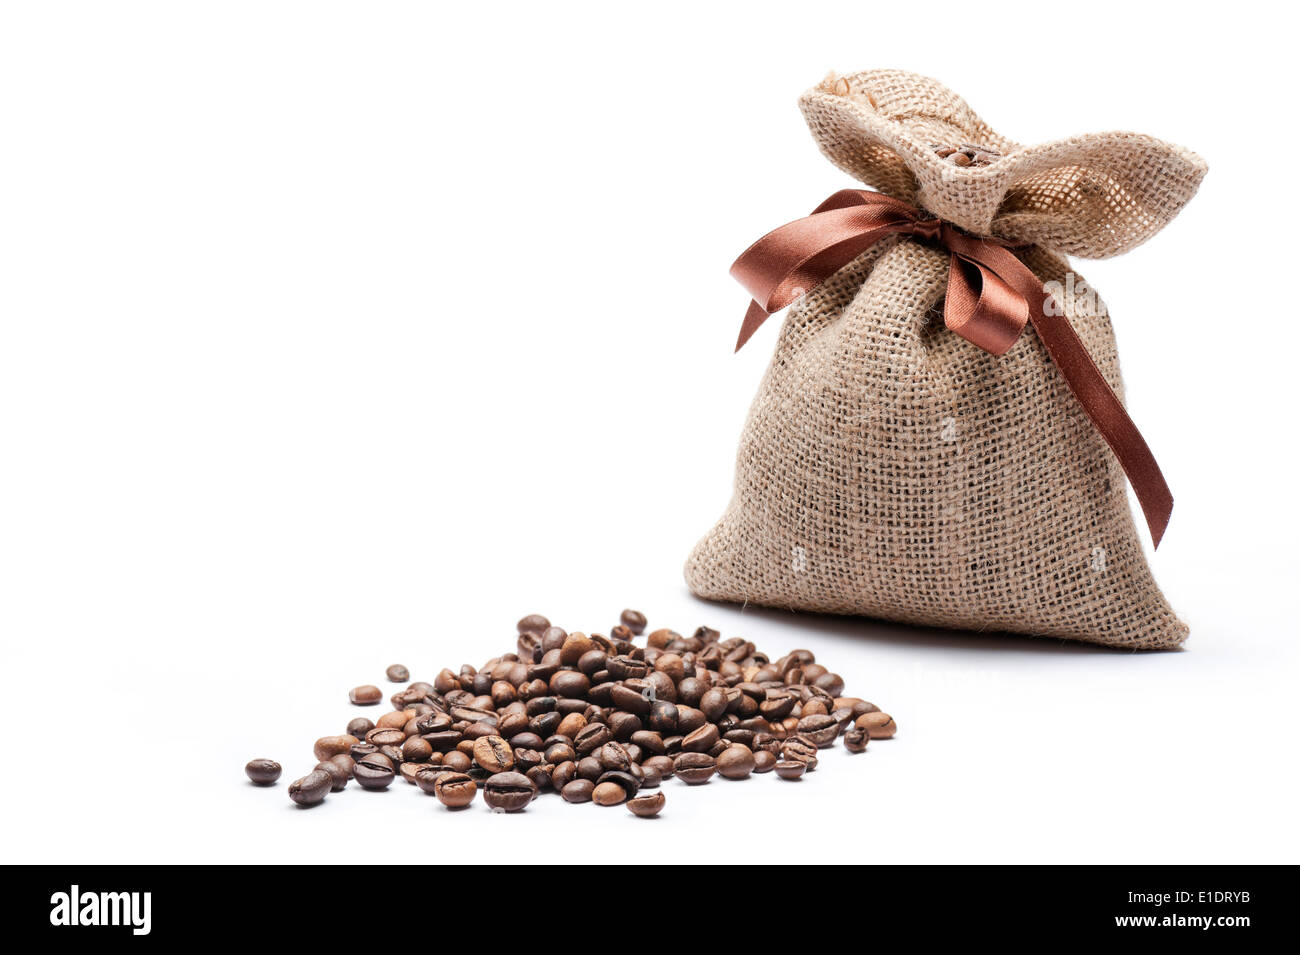 jute bag of coffee with coffee beans on white background - Stock Image